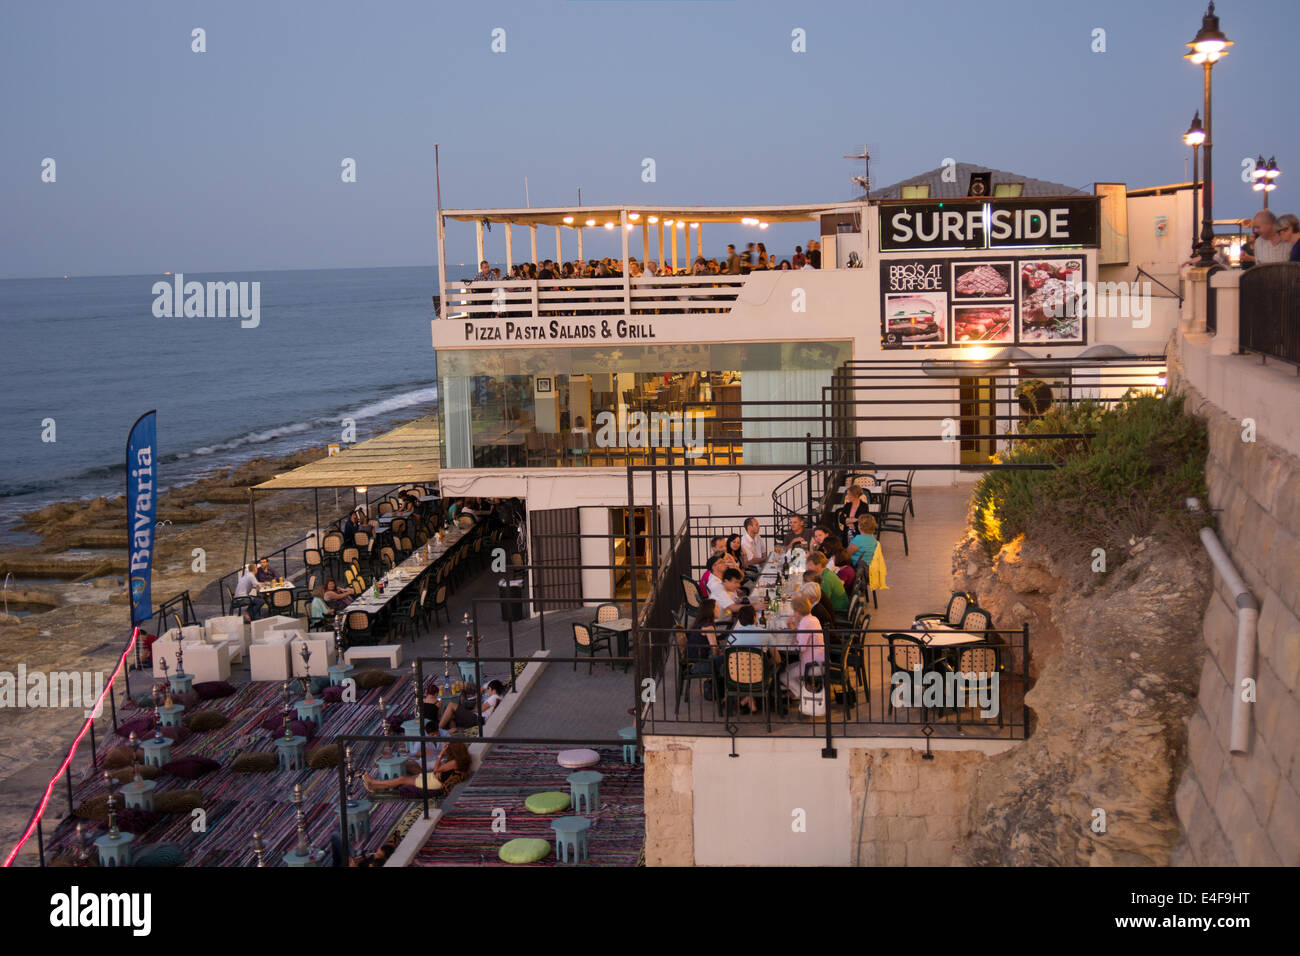 Customers enjoy a fine evening dining outdoors at the Surfside restaurant located in Tower Road, Sliema Malta - Stock Image